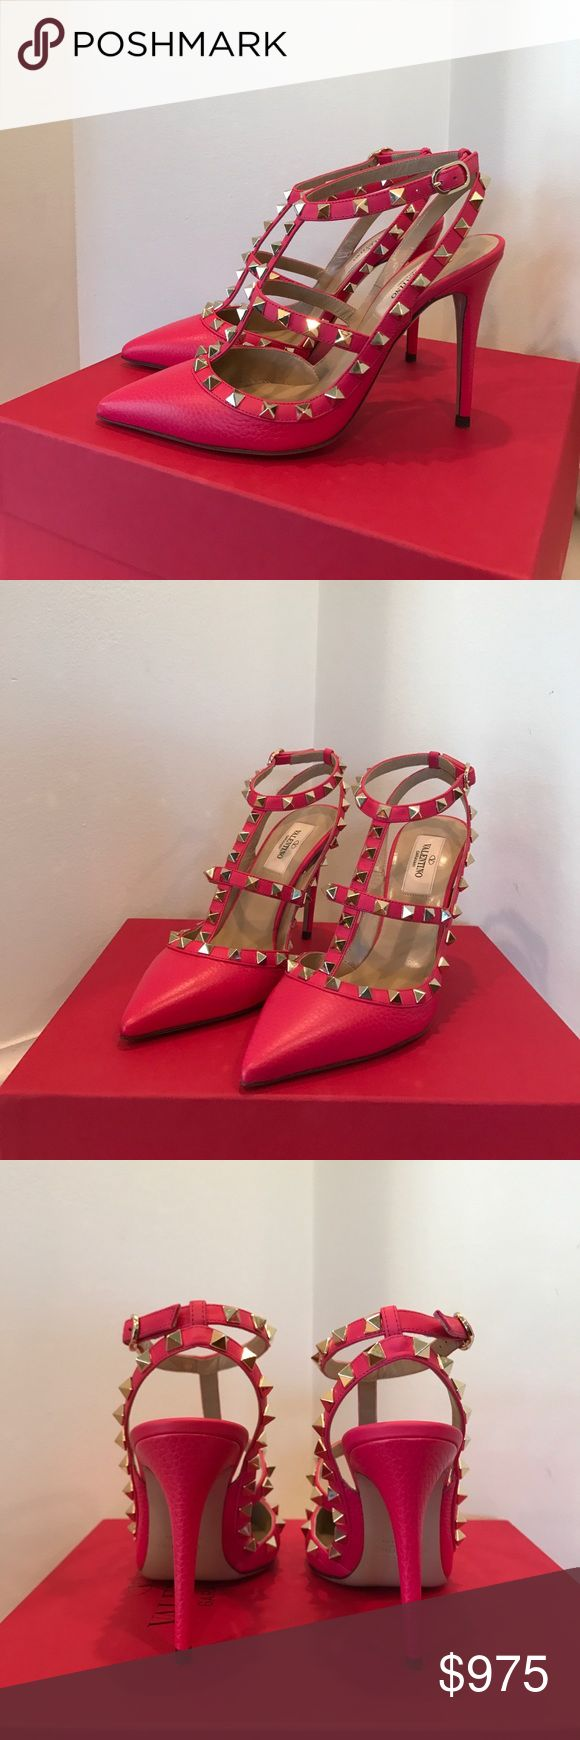 • Valentino • NWT Pink Rockstud T-Strap Pumps 7.5 - Valentino  - Authentic  - New in Box - Pink Rockstud Pumps - Silver Studs - Size 37 1/2  - Comes with extra Studs, heel tabs, original box, dust Bag and authenticity booklet. - Purchased for $1,075 without tax  - Price is Firm Valentino Shoes Heels